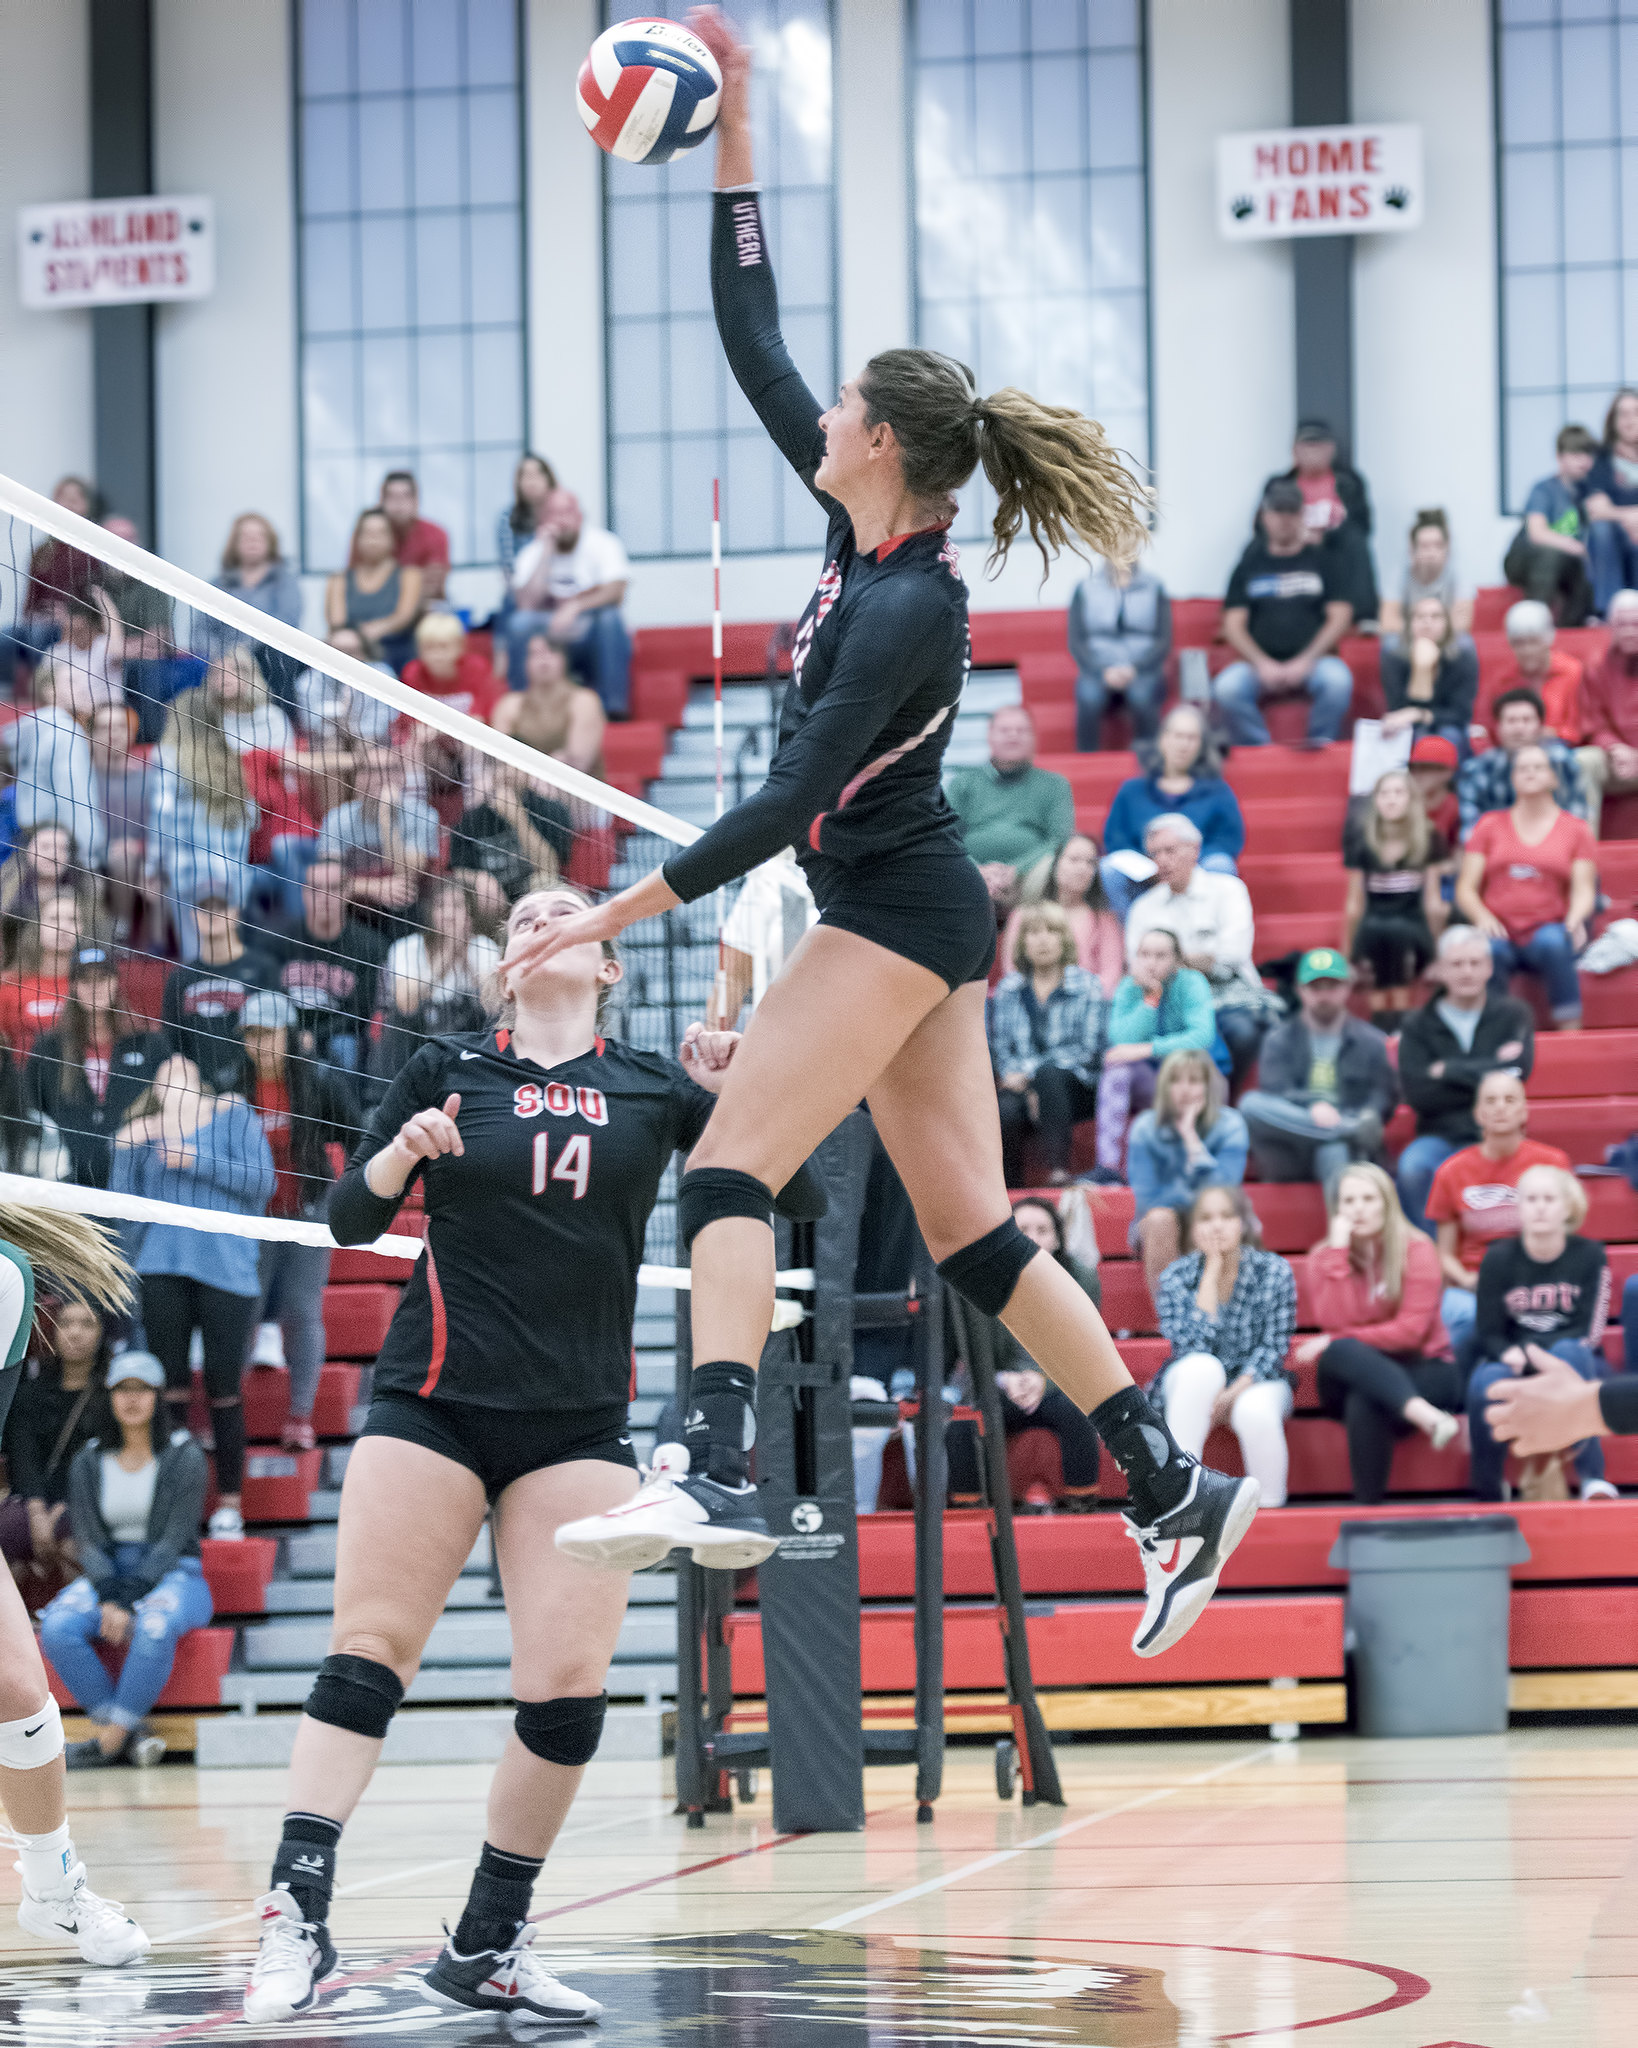 Teaching Volleyball Skills:Certain hitting volleyball drills and skills study are designed to help players develop an aggressive mindset when they go up to hit. (Al Case)